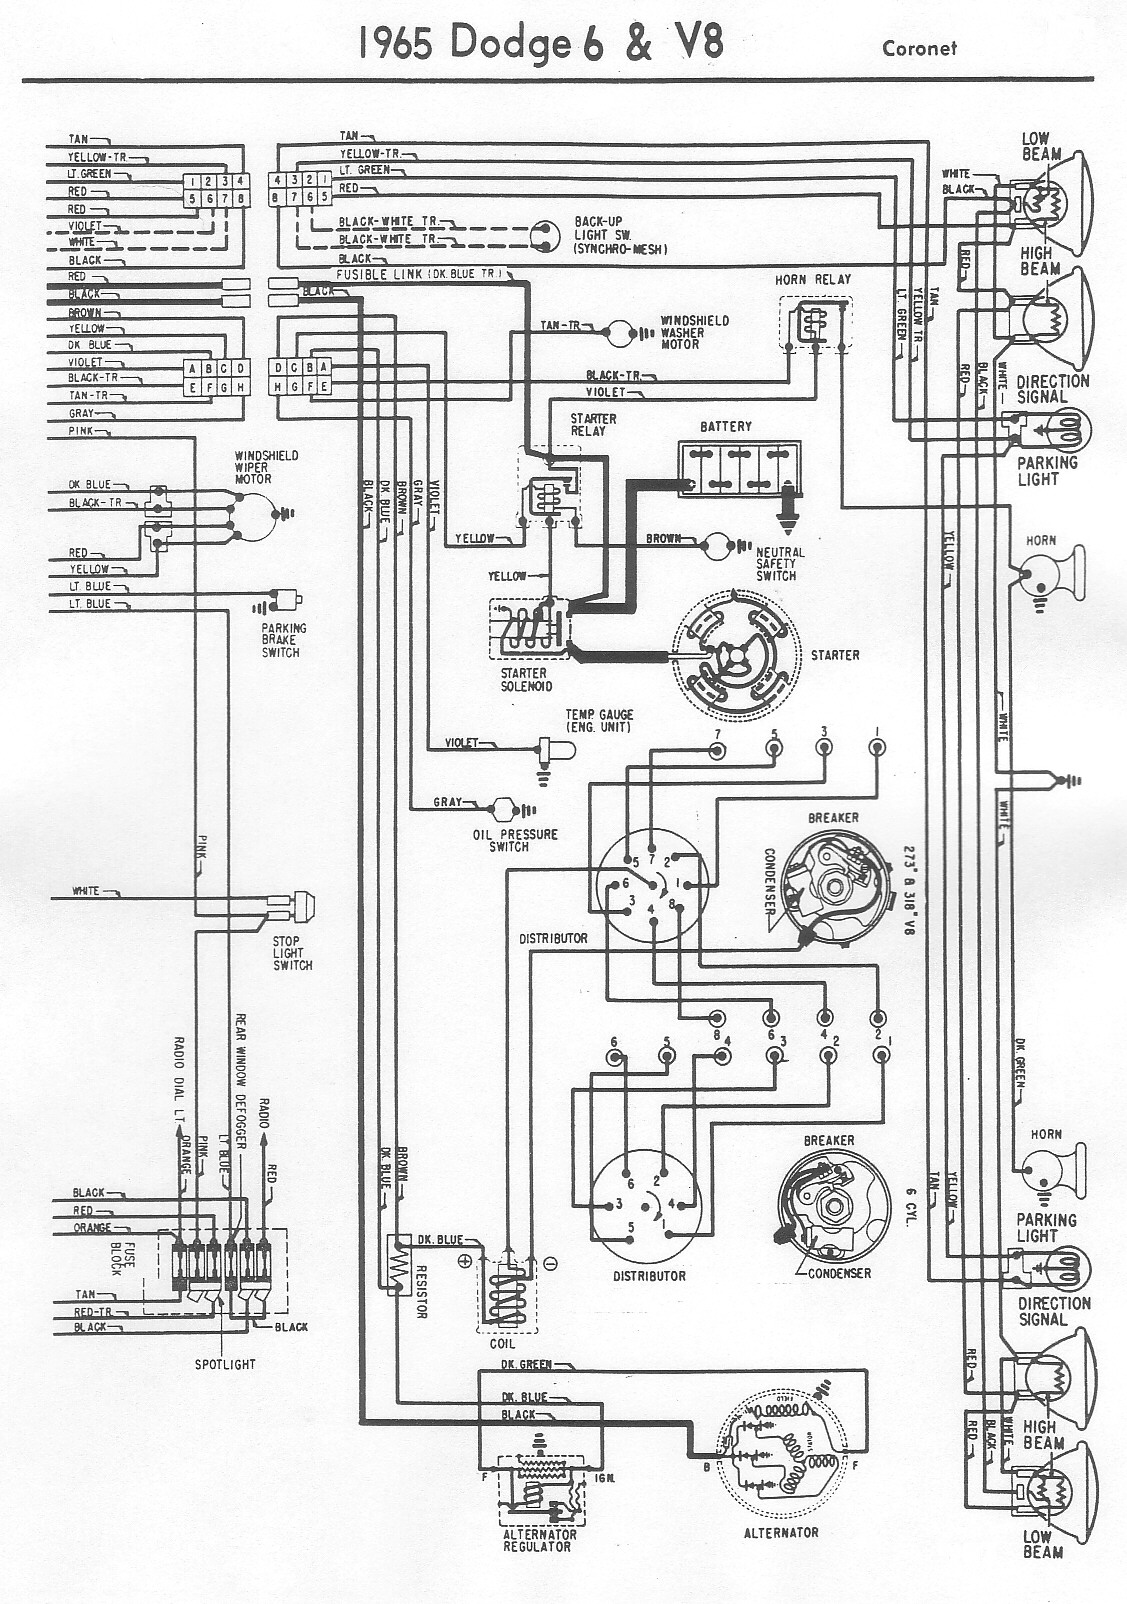 dodge alternator wiring 1967 dodge wiring diagram wiring diagram e6 dodge cummins alternator wiring diagram 1967 dodge wiring diagram wiring